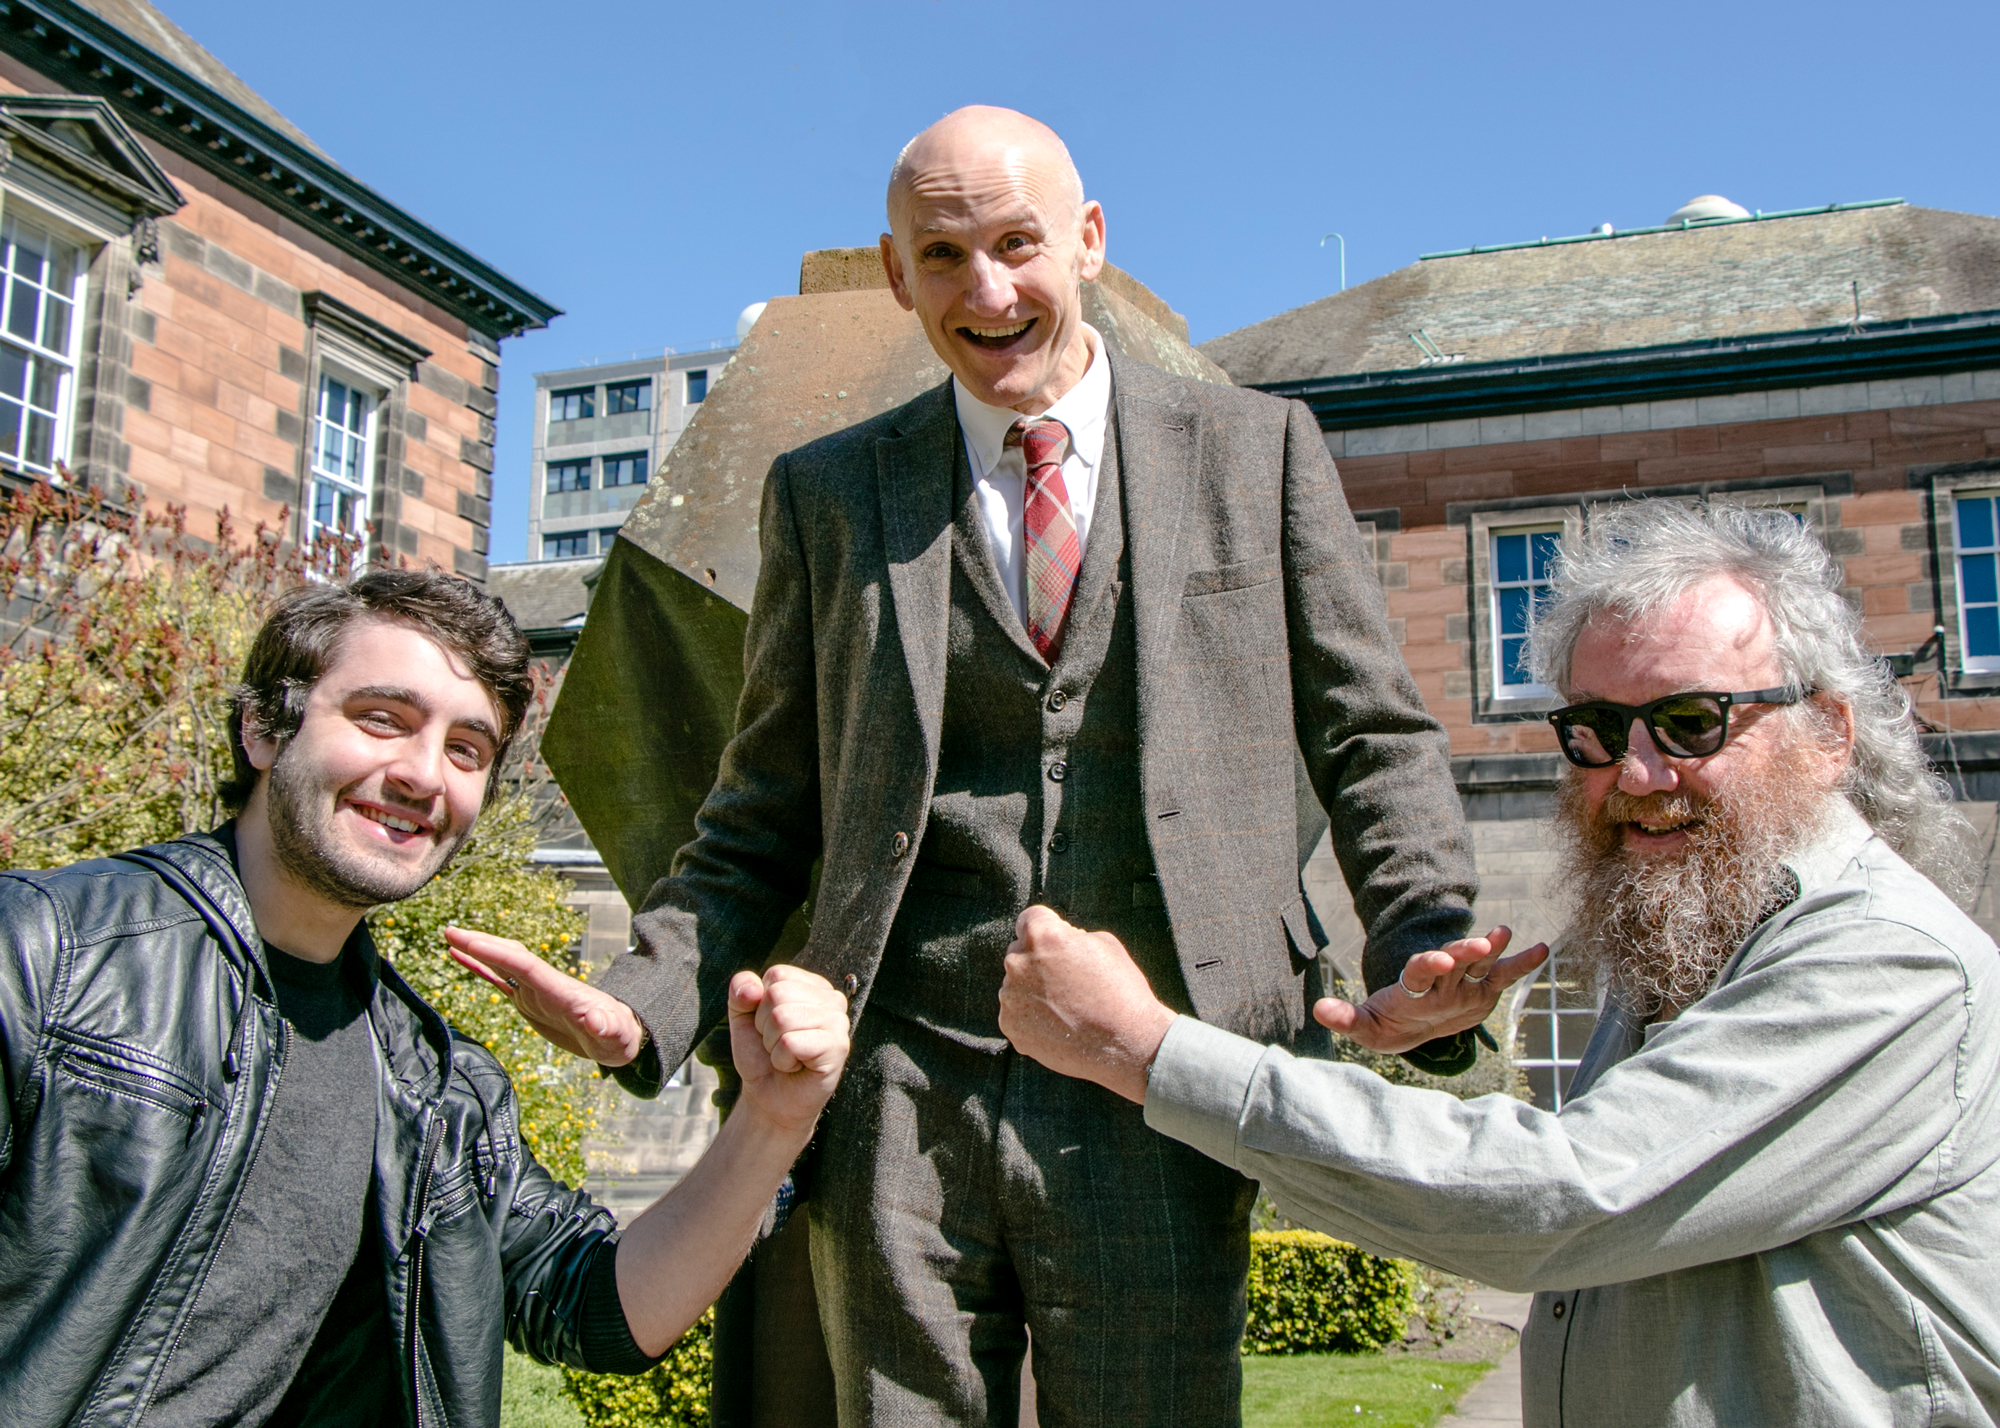 Professor Fordyce Davidson (middle) keeps student Rory McDowell (left) and graduate Iain Brodie (right) at bay ahead of next Saturday's event